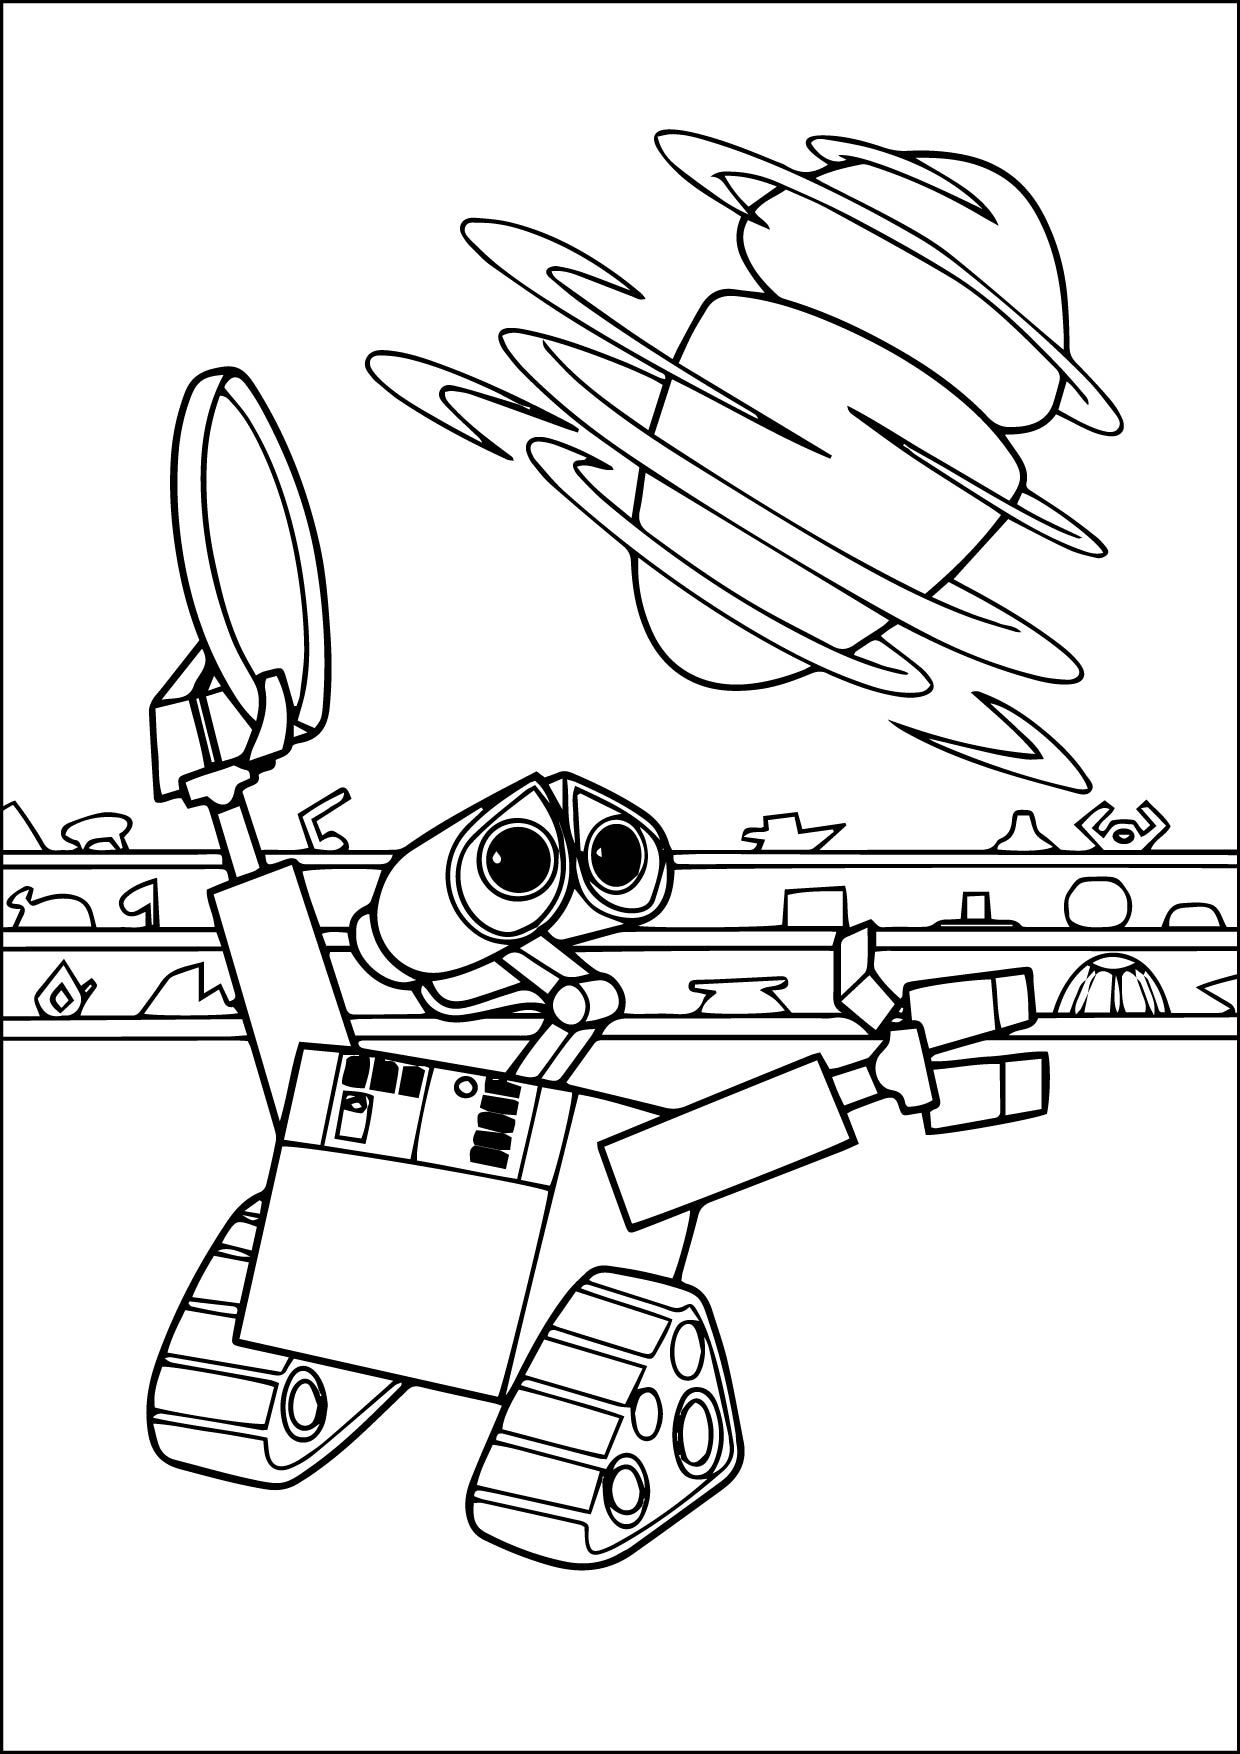 cool coloring page 11102015_07121501 Check more at http